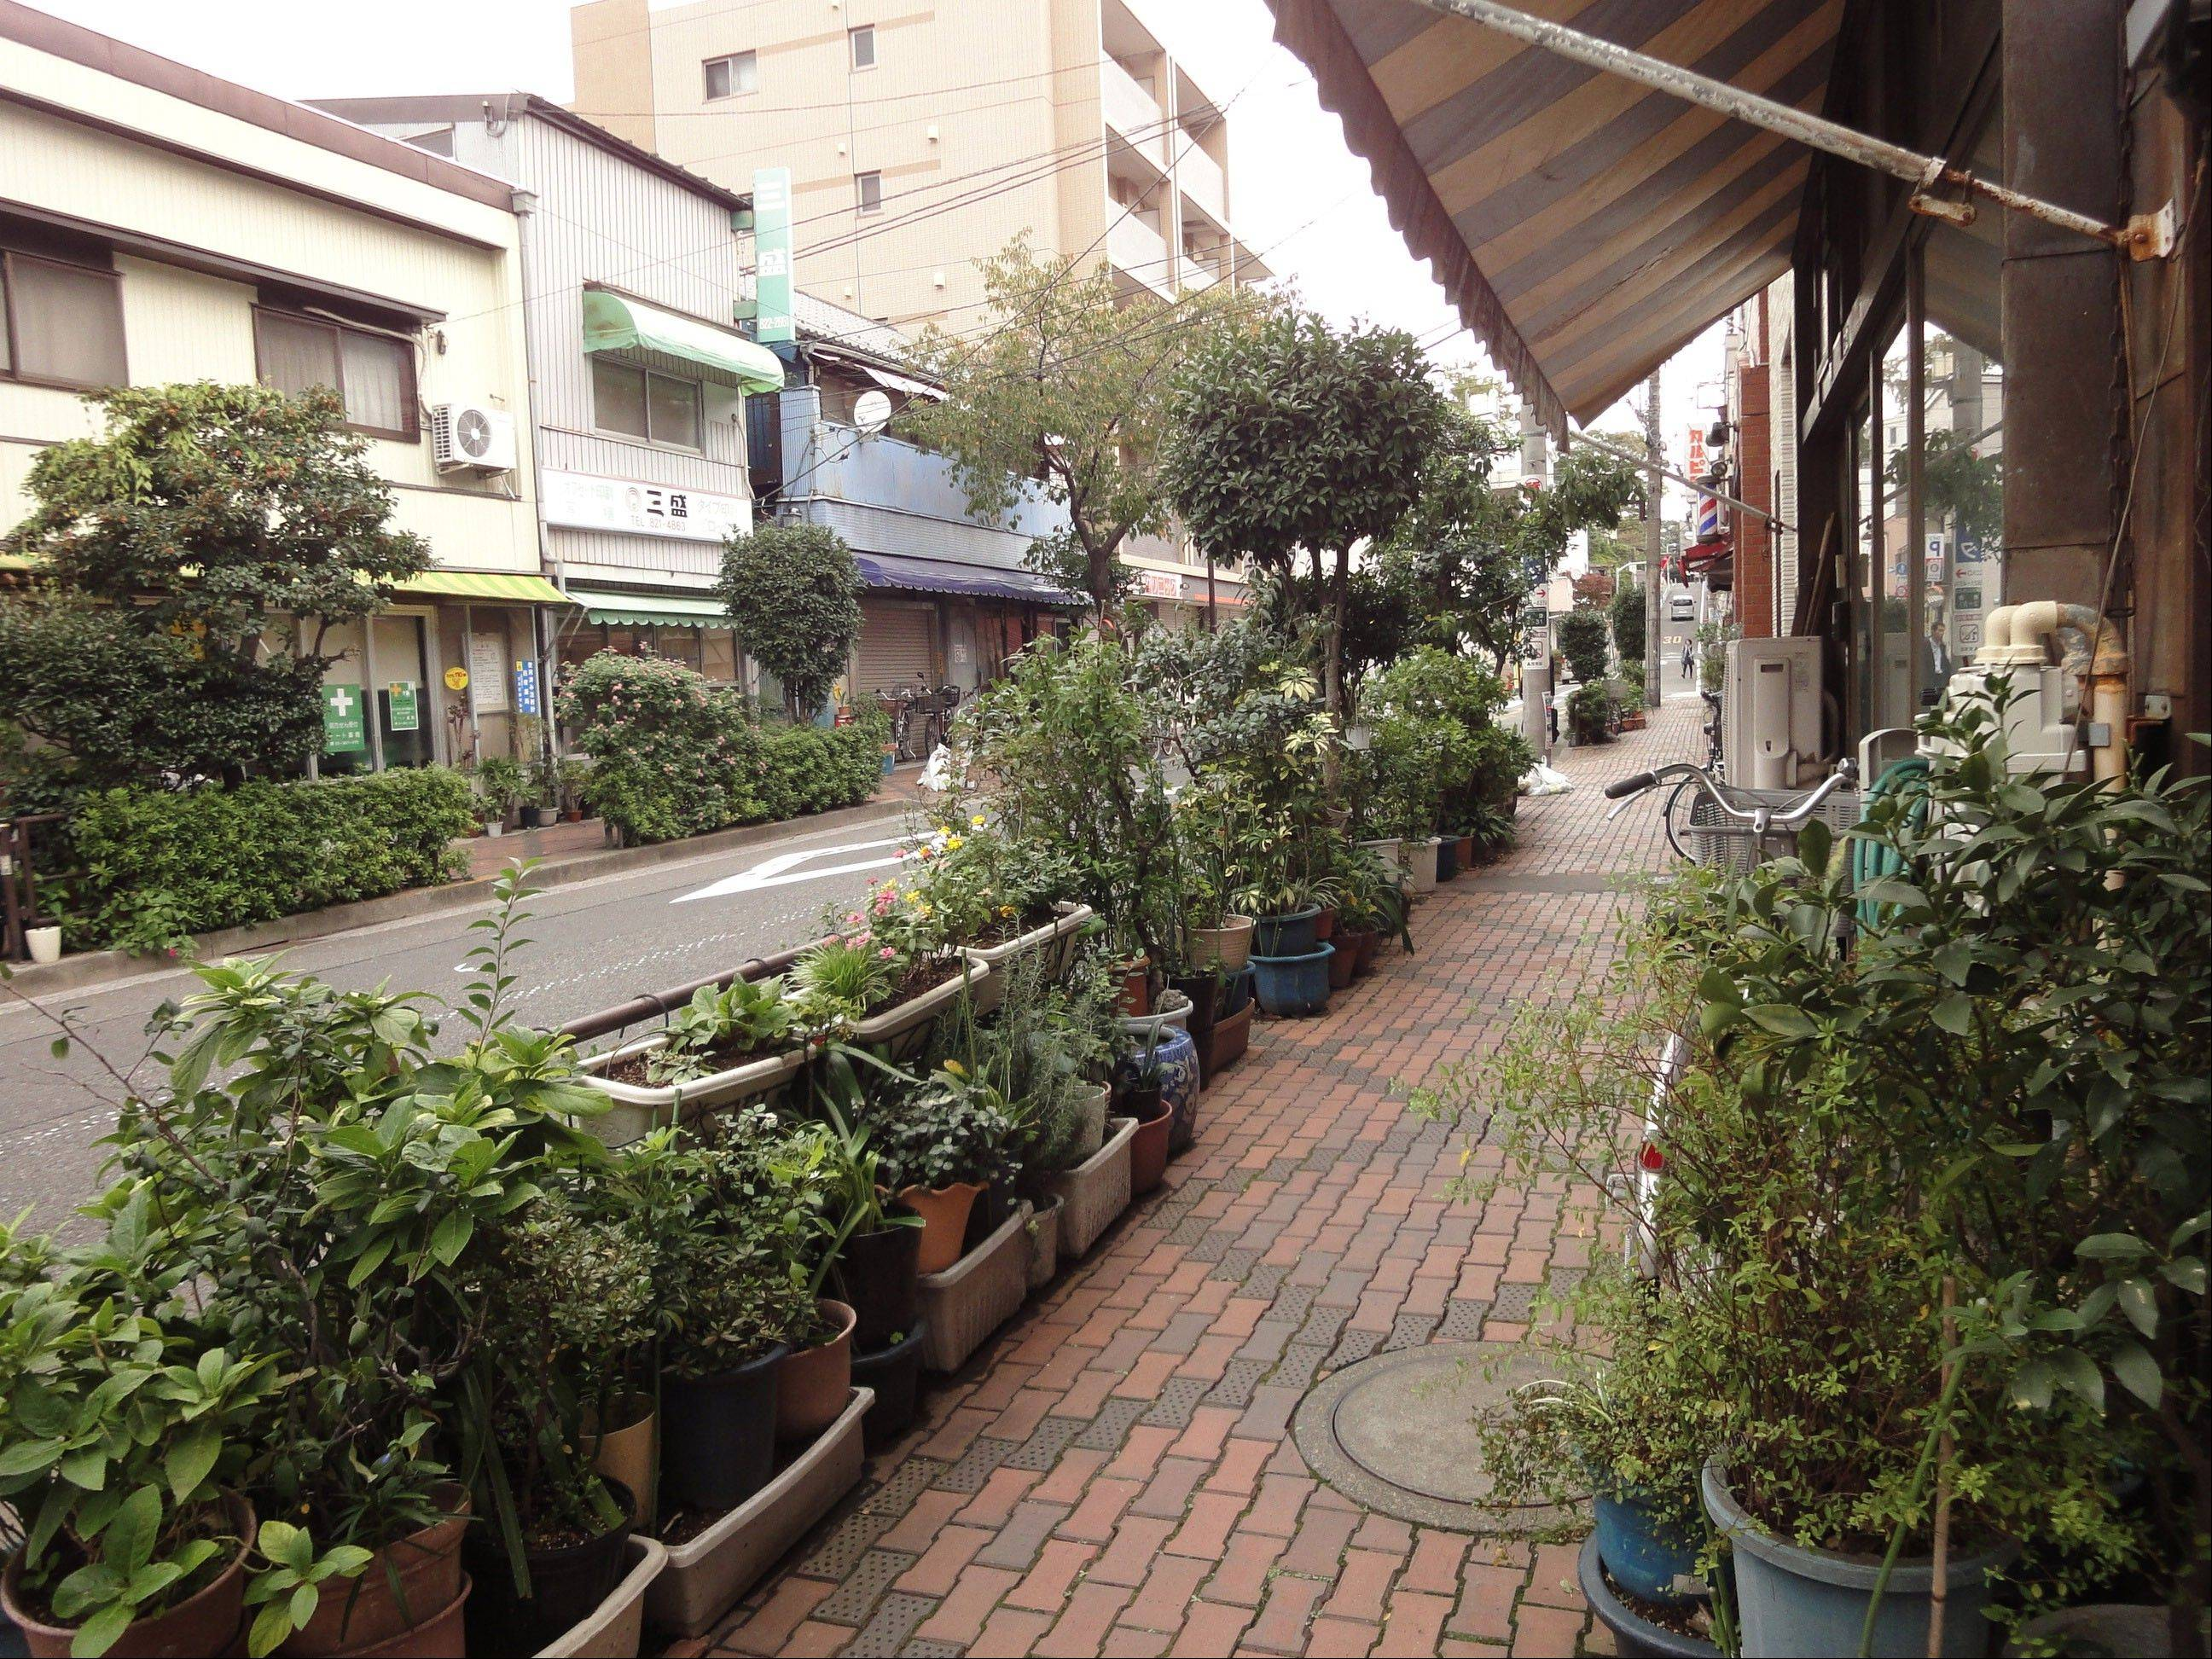 Despite the lack of yards, the narrow streets of Yanaka in Tokyo are lined with gardens that residents and shopkeepers maintain in flowerpots.